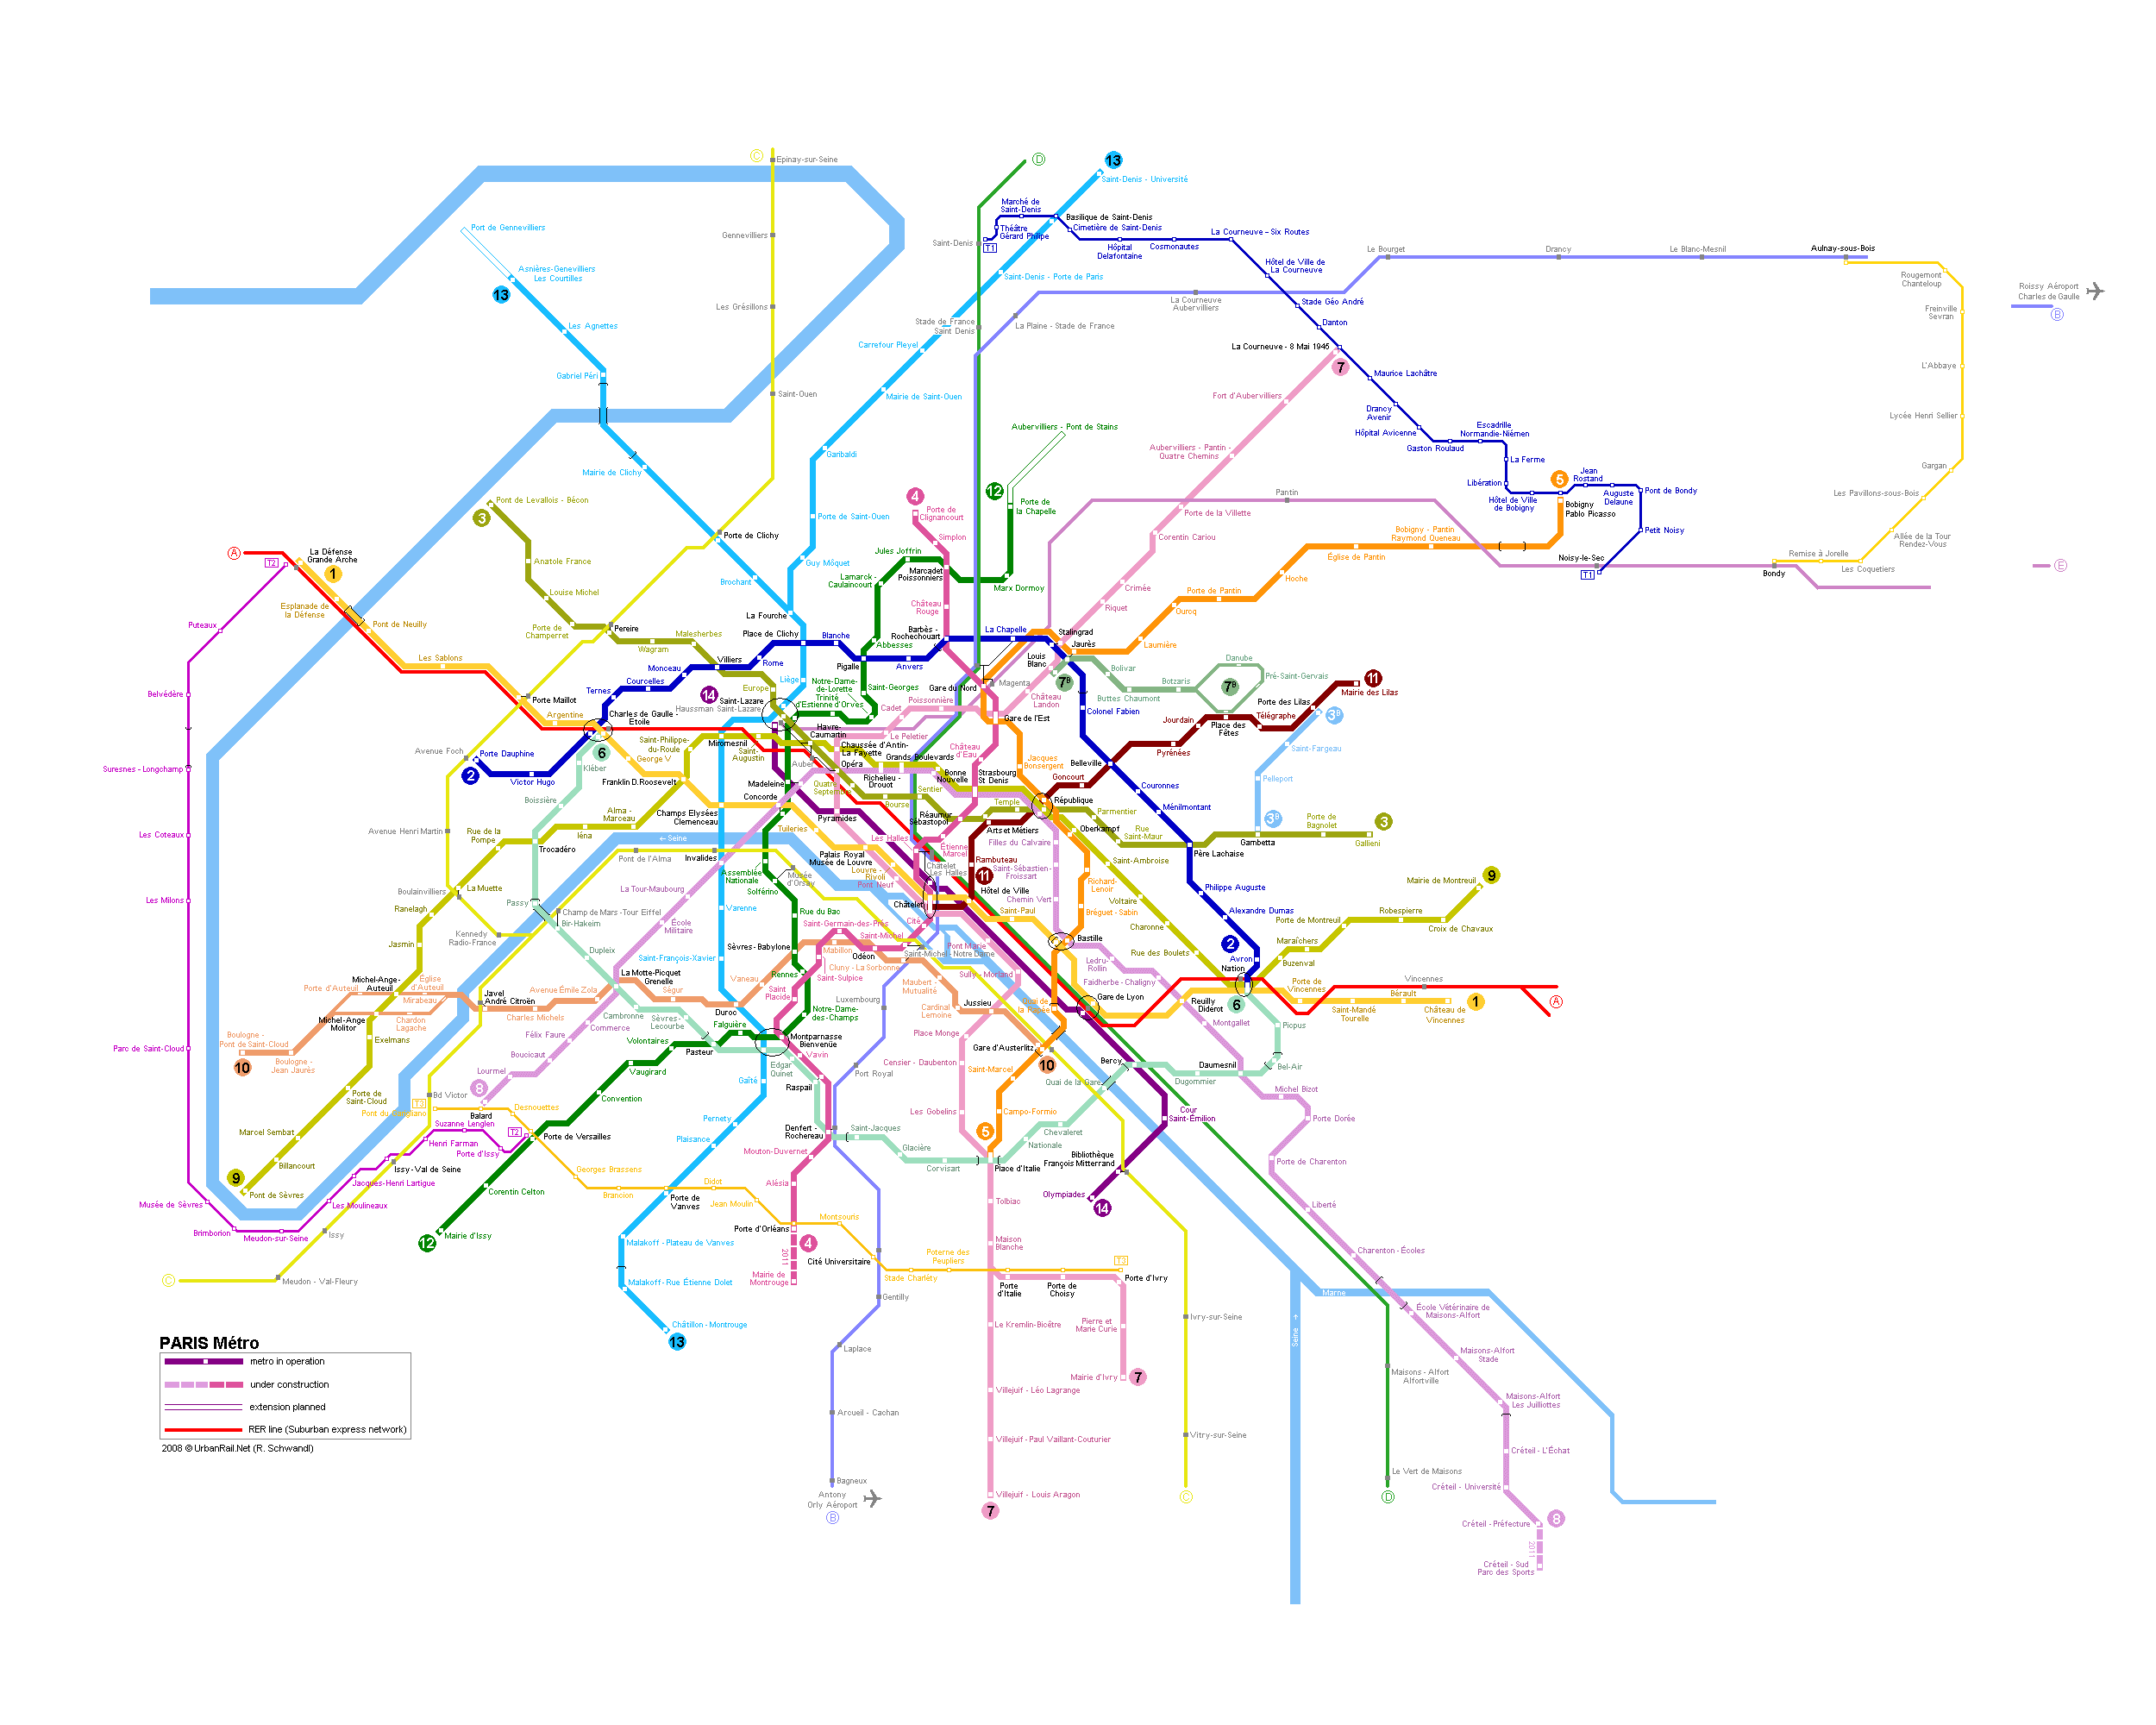 Map of metro in Paris